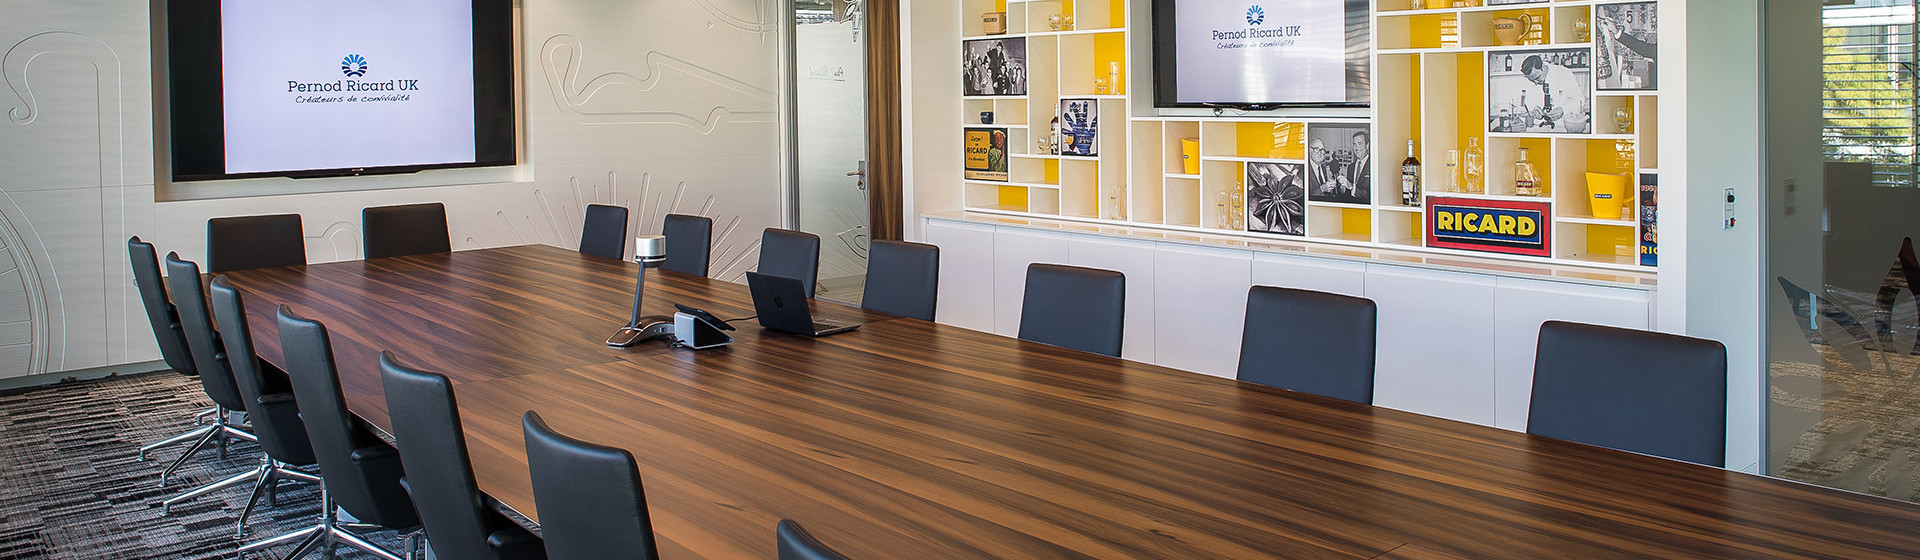 Image for Pernod Ricard Meeting Room